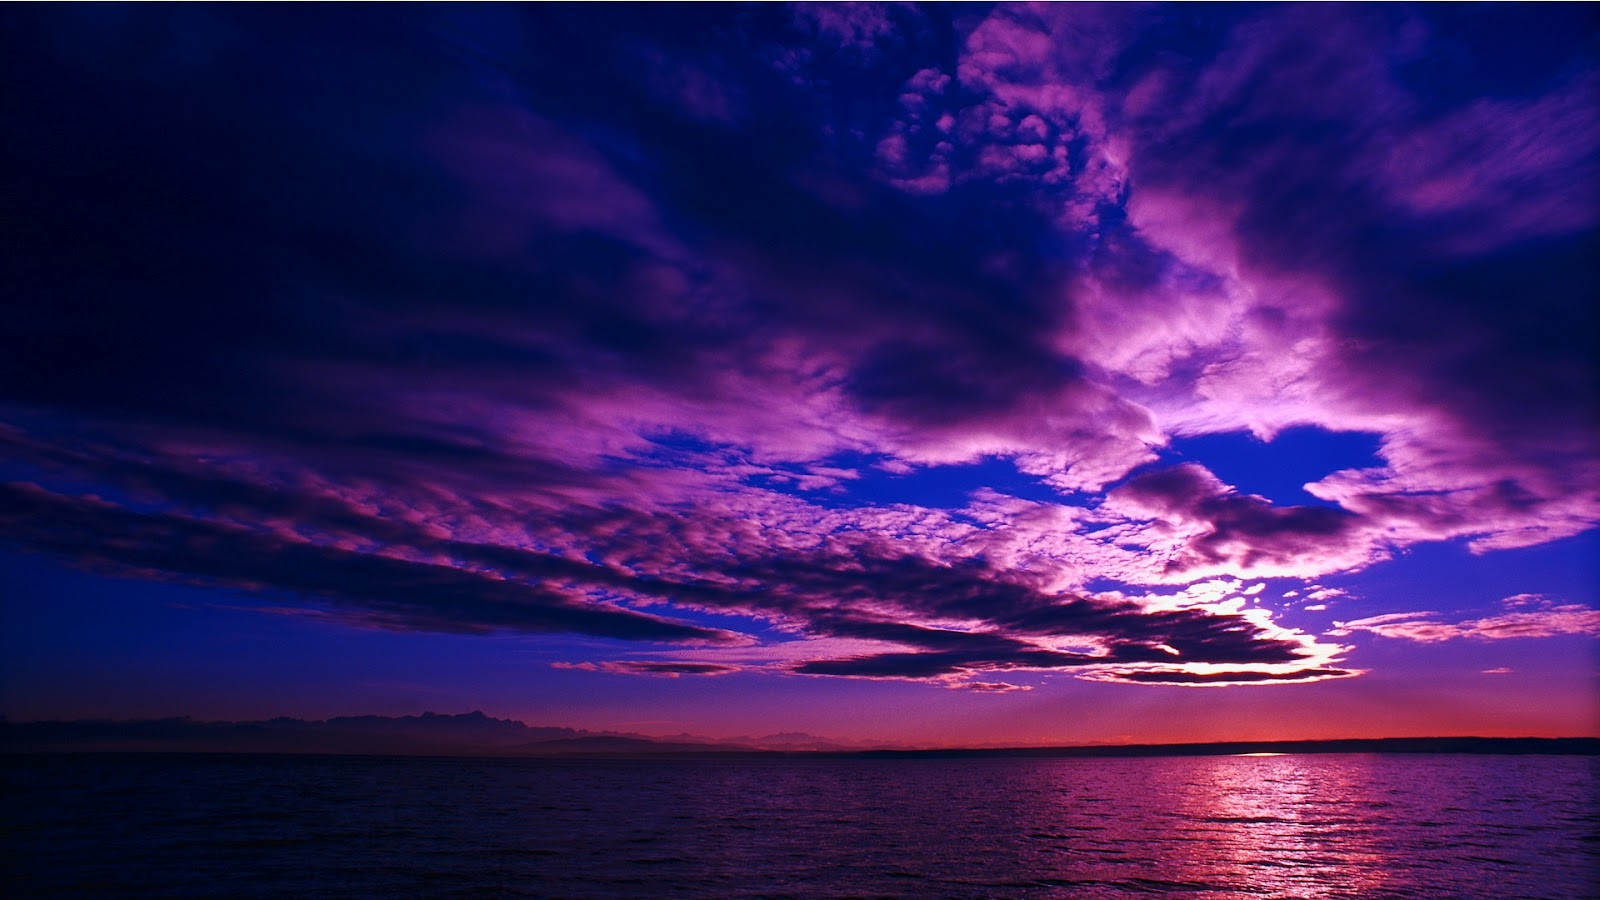 download wallpaper Deep Purple Sunse 1600x900